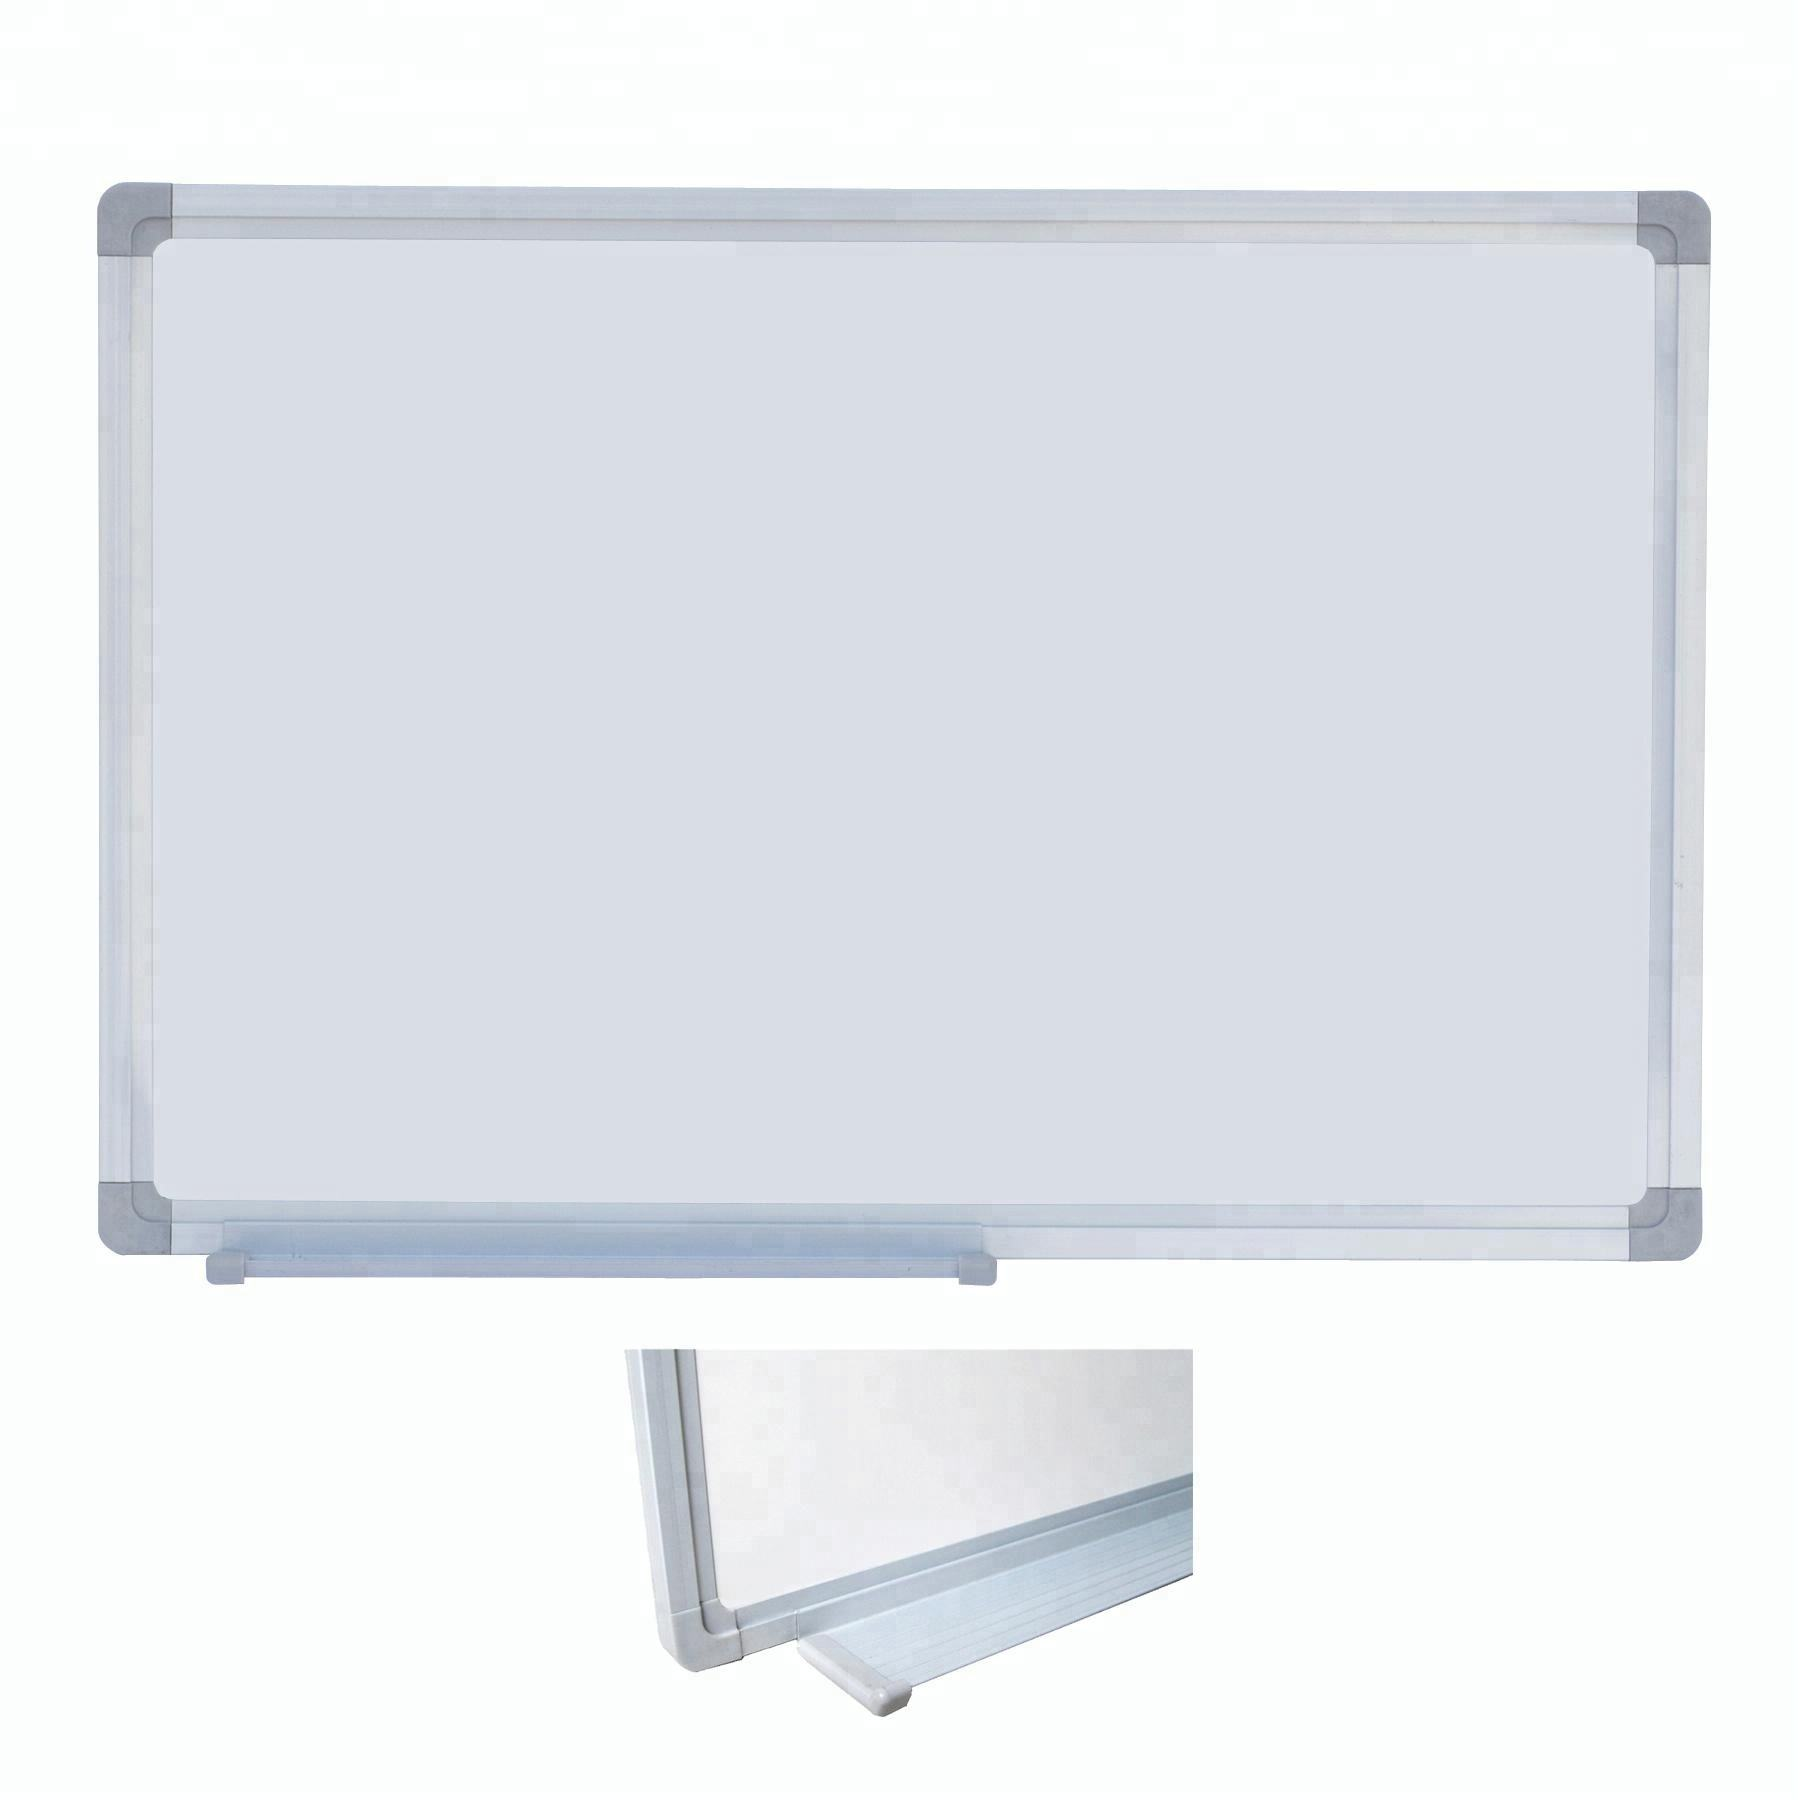 primary 240*120cm school writing boards and whiteboard with pen